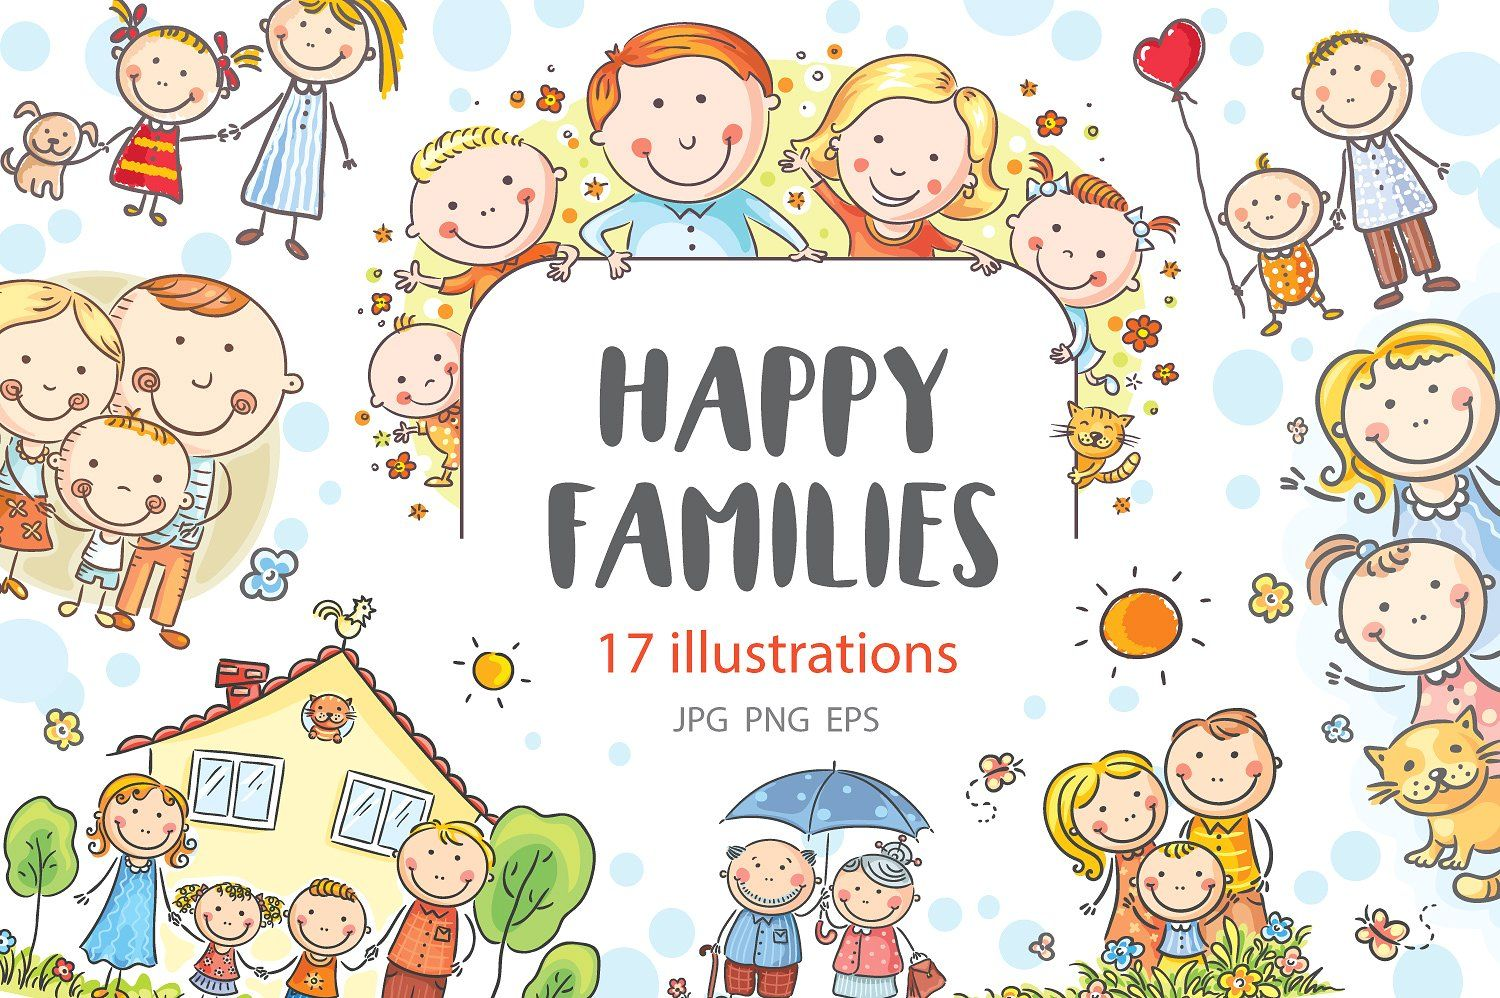 Happy Family PNG - Happy Family Cartoon, Happy Family Of Four, Happy Family  Drawing. - CleanPNG / KissPNG